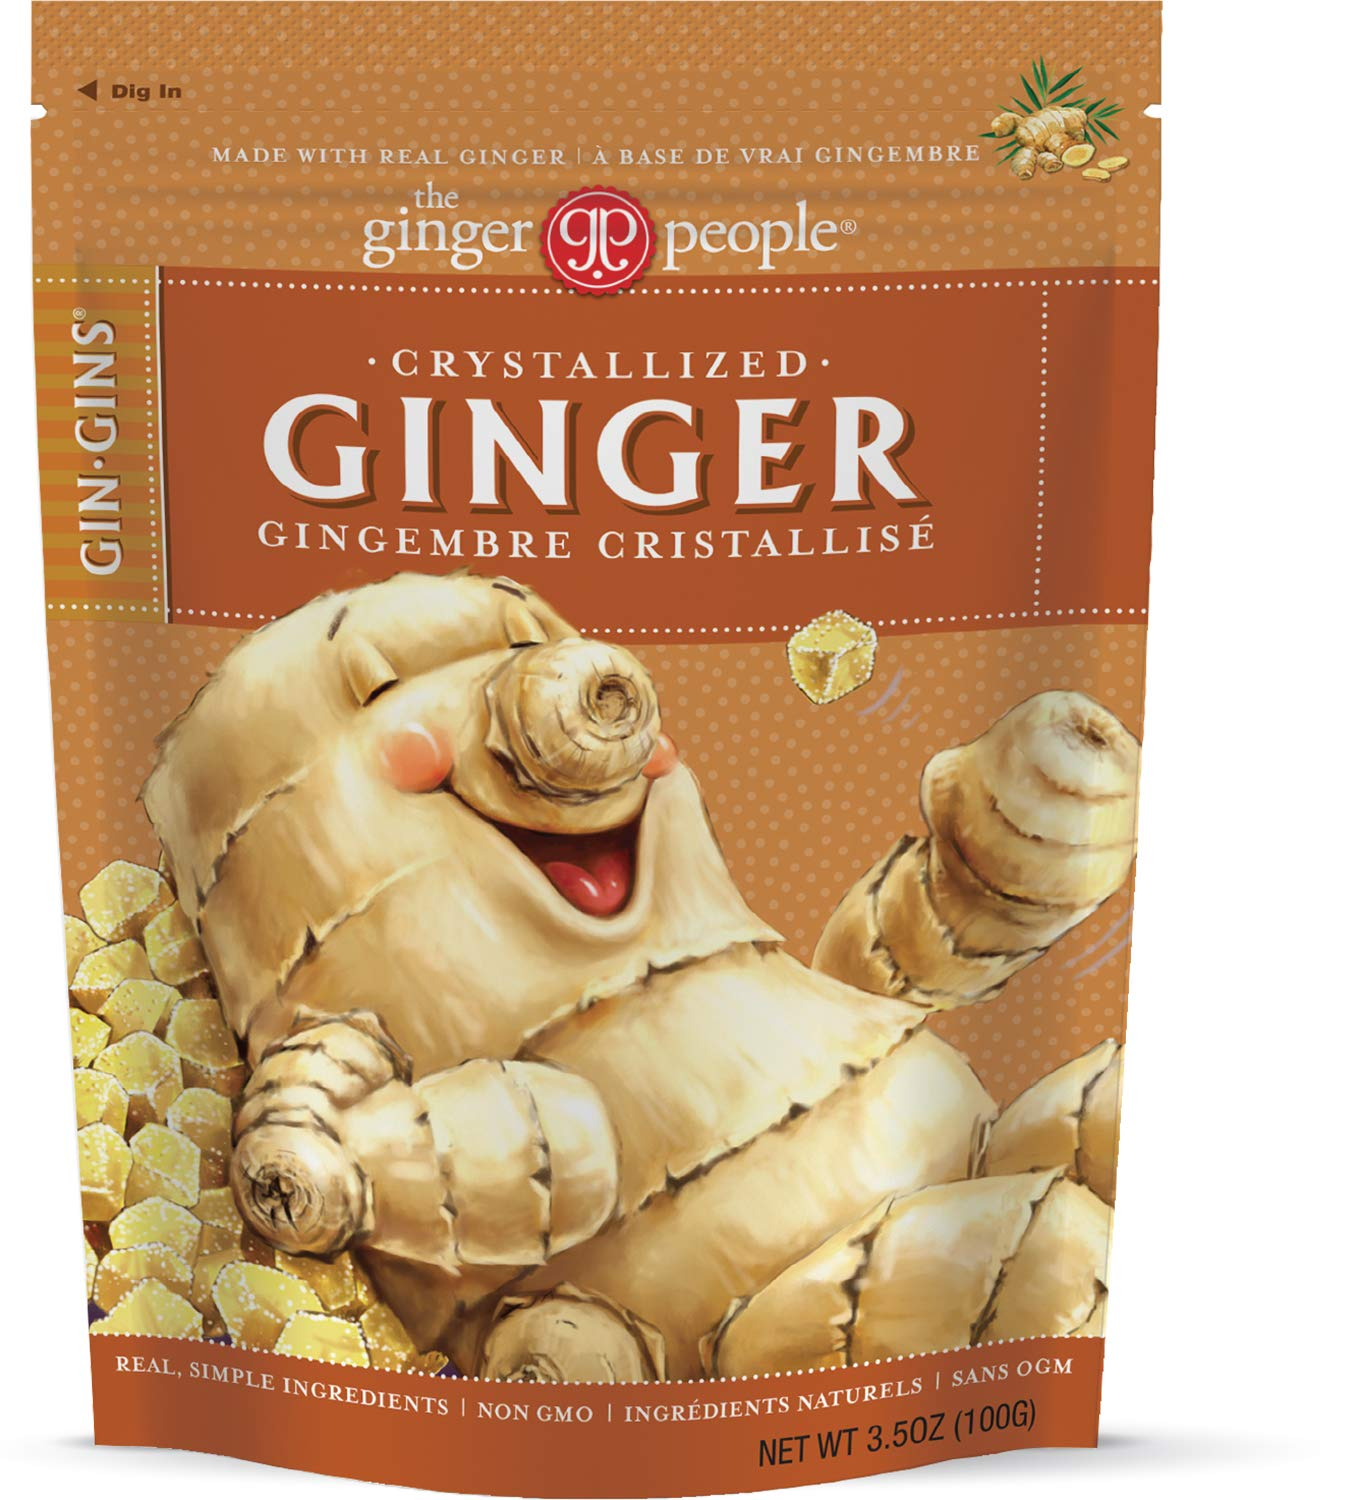 The Ginger People Gin Gins Crystallized Ginger Candy, 3.5 Ounce, Pack of 12